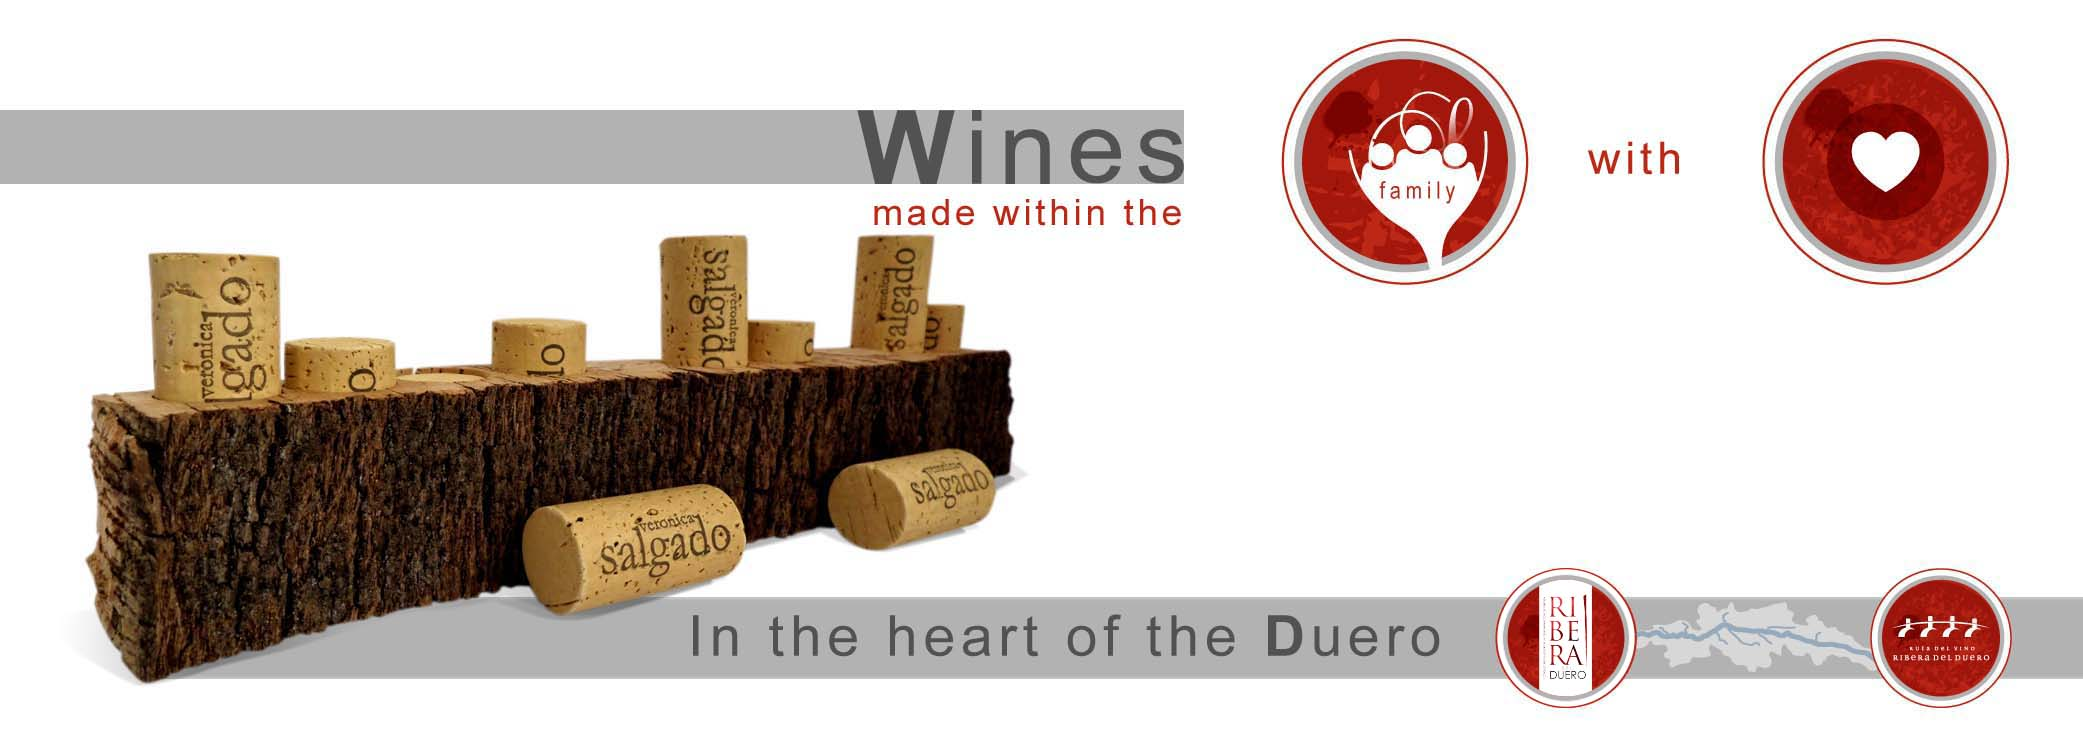 Wines made within the family with heart | In the heart of the Duero river